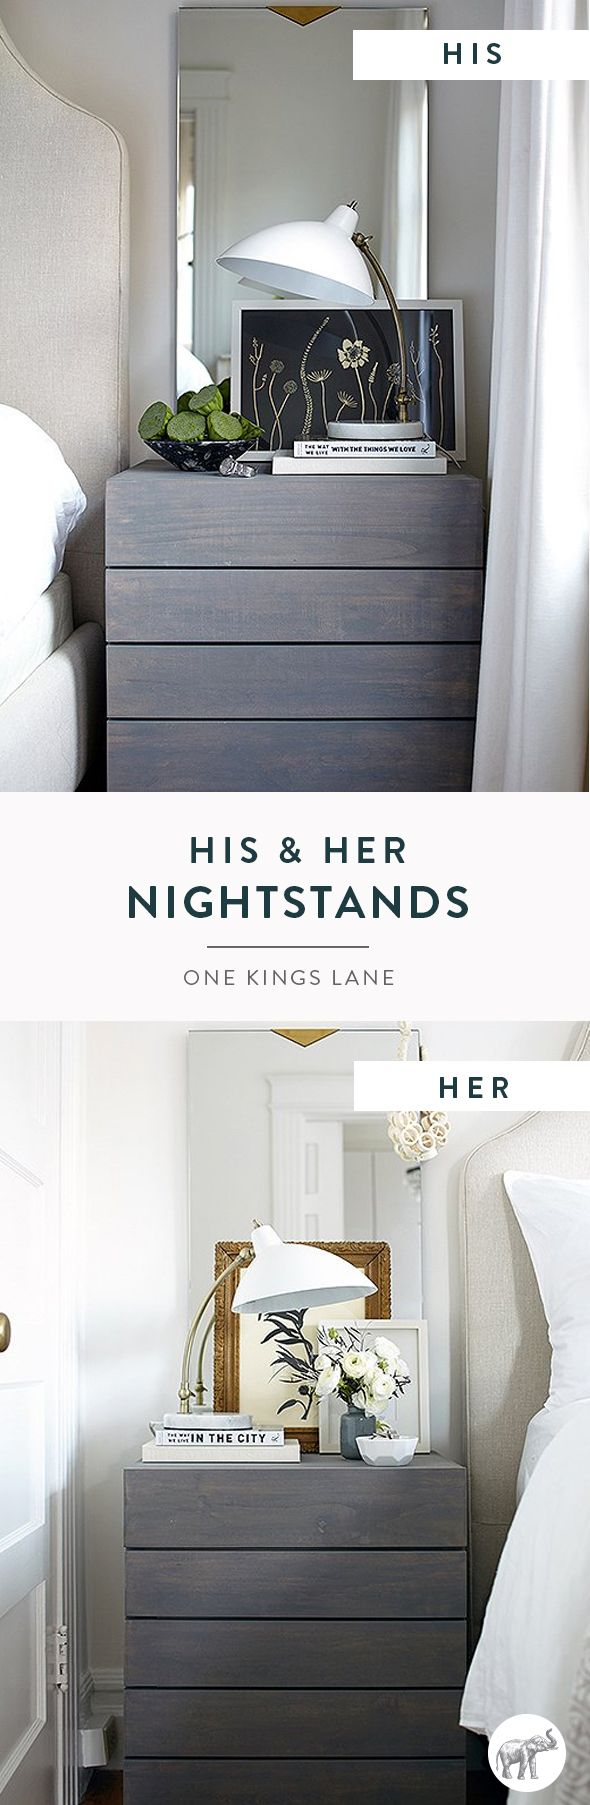 Learn how to style a gender-neutral nightstand for him and her with these versatile and inspirational ideas from our bedroom makeover with Caitlin Flemming.